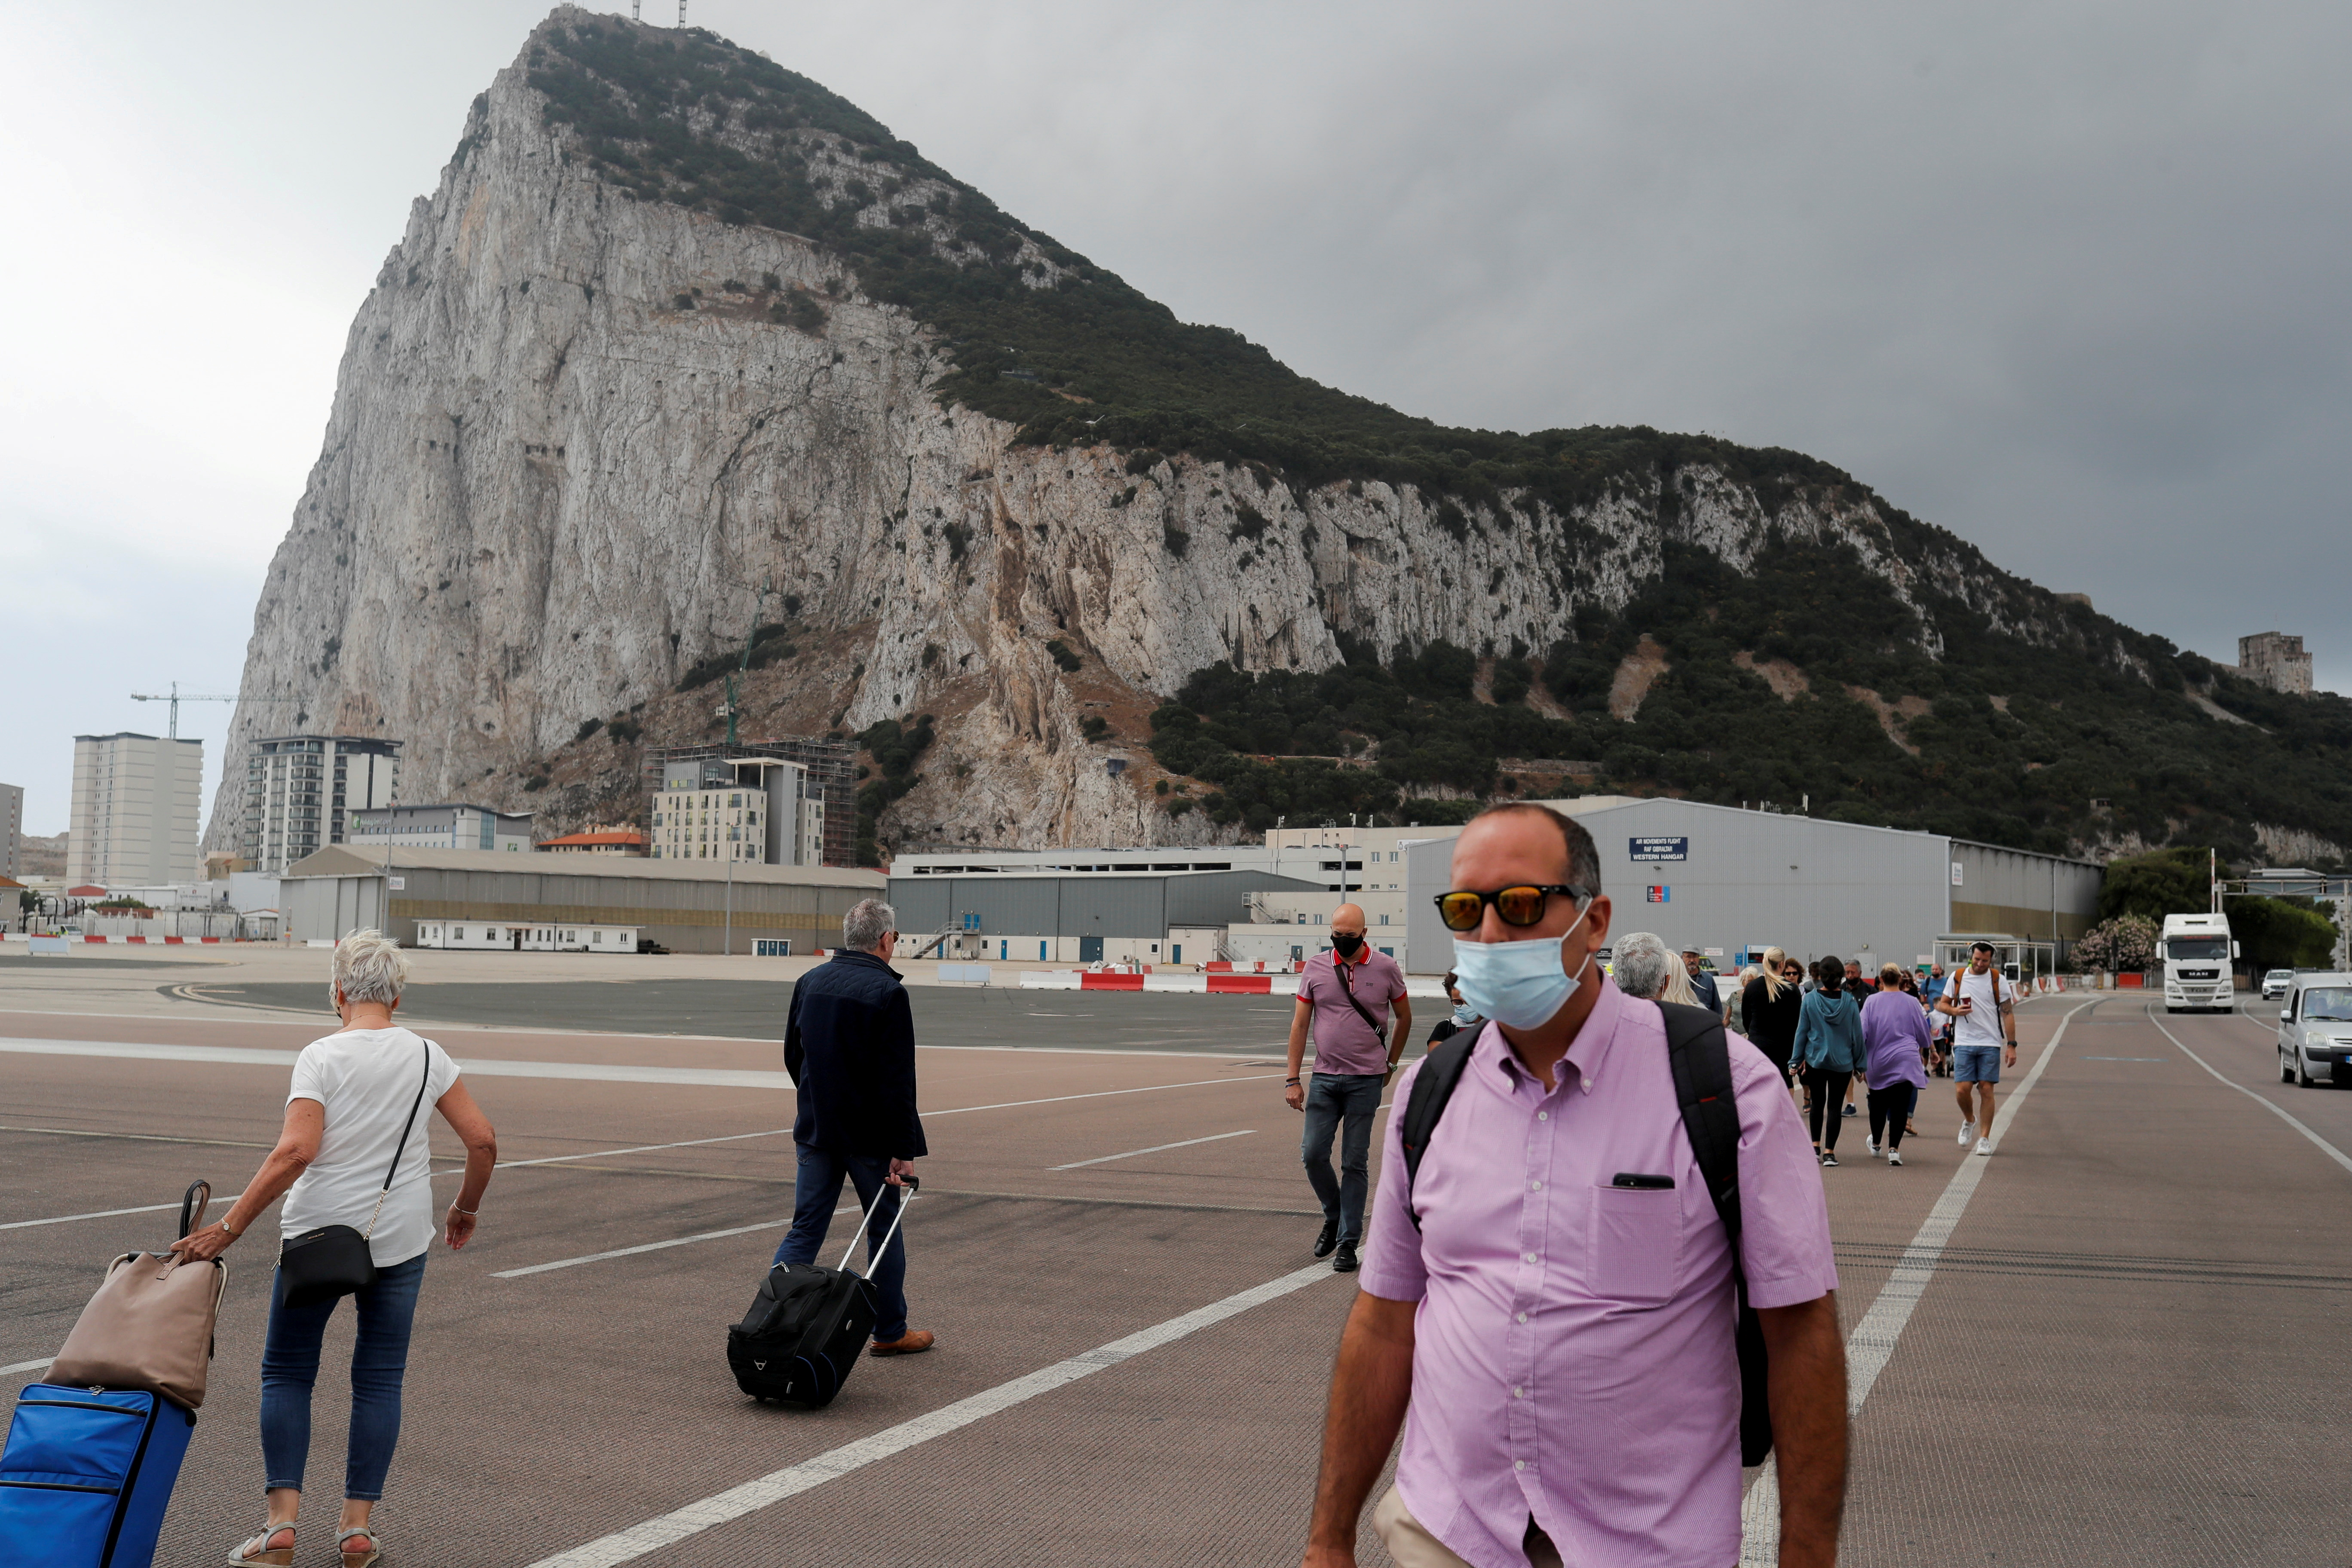 People cross the tarmac of the airport in front of the Rock of Gibraltar in the British overseas territory of Gibraltar, June 24, 2021. REUTERS/Jon Nazca